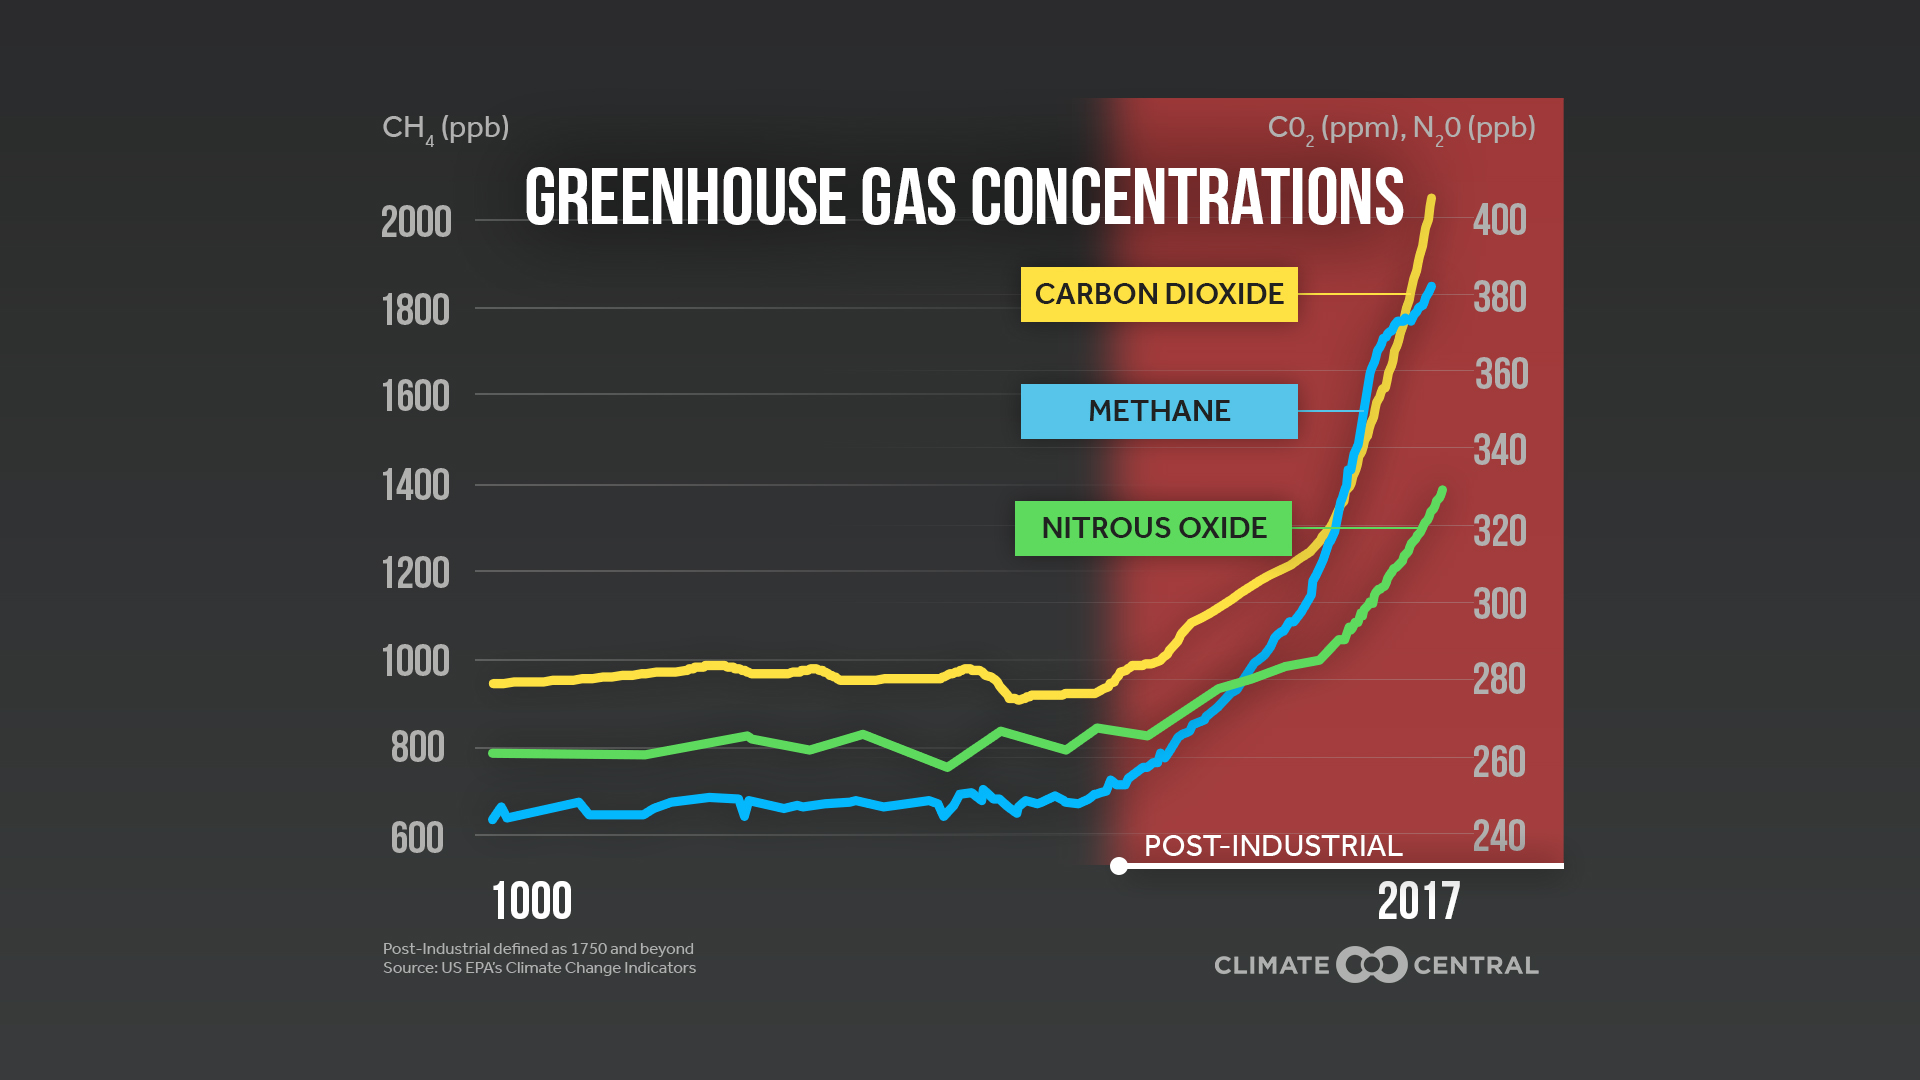 greenhouse gas sources in the u s climate central